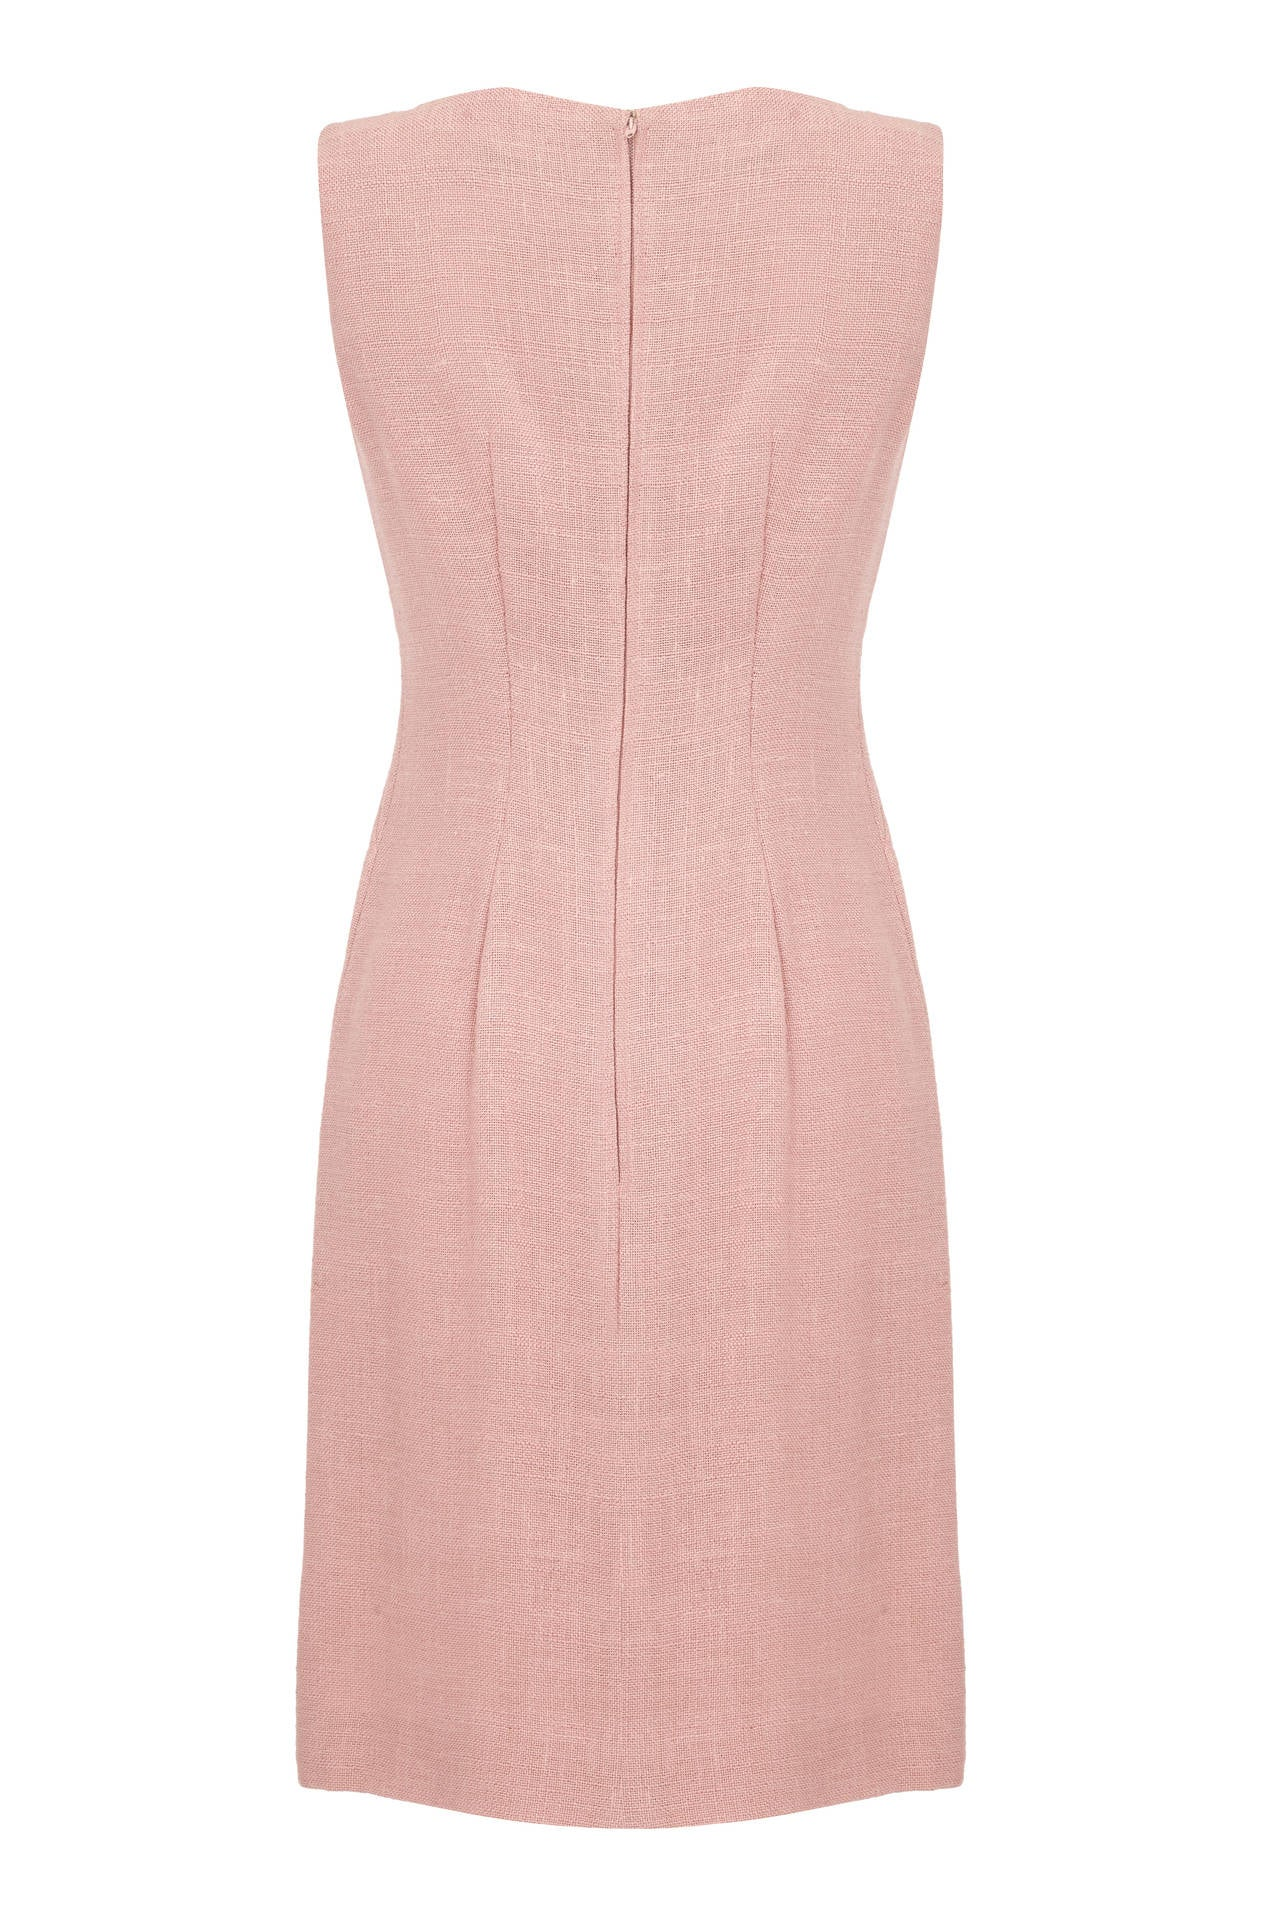 Great little 60s shift dress from British designer Susan Small.  This simple yet classic pale pink linen dress is incredibly versatile and could be easily dressed up or down.  It features a vent on the left side of the skirt, is fully lined and